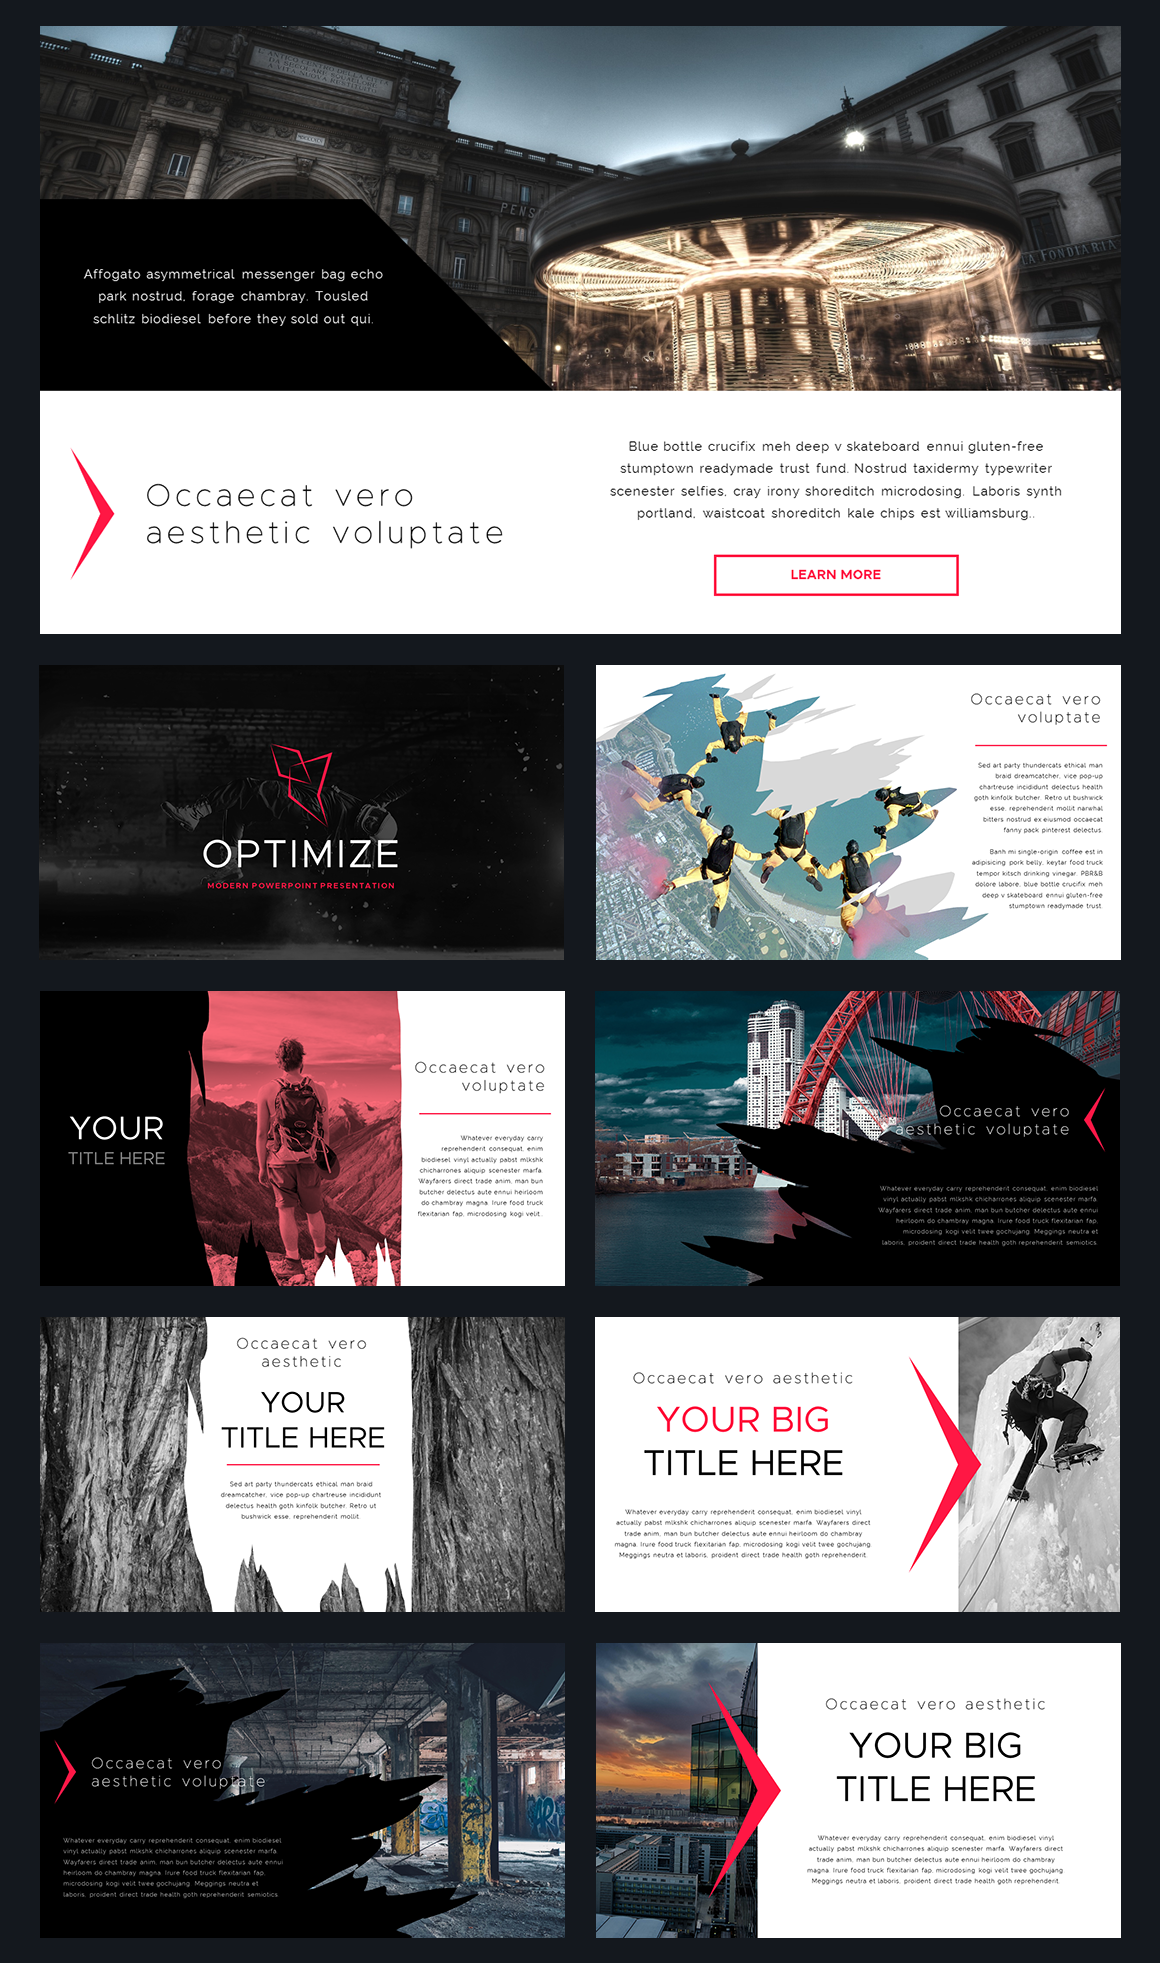 Optimize modern powerpoint template by thrivisualy on optimize modern powerpoint template by thrivisualy on creativemarket toneelgroepblik Image collections